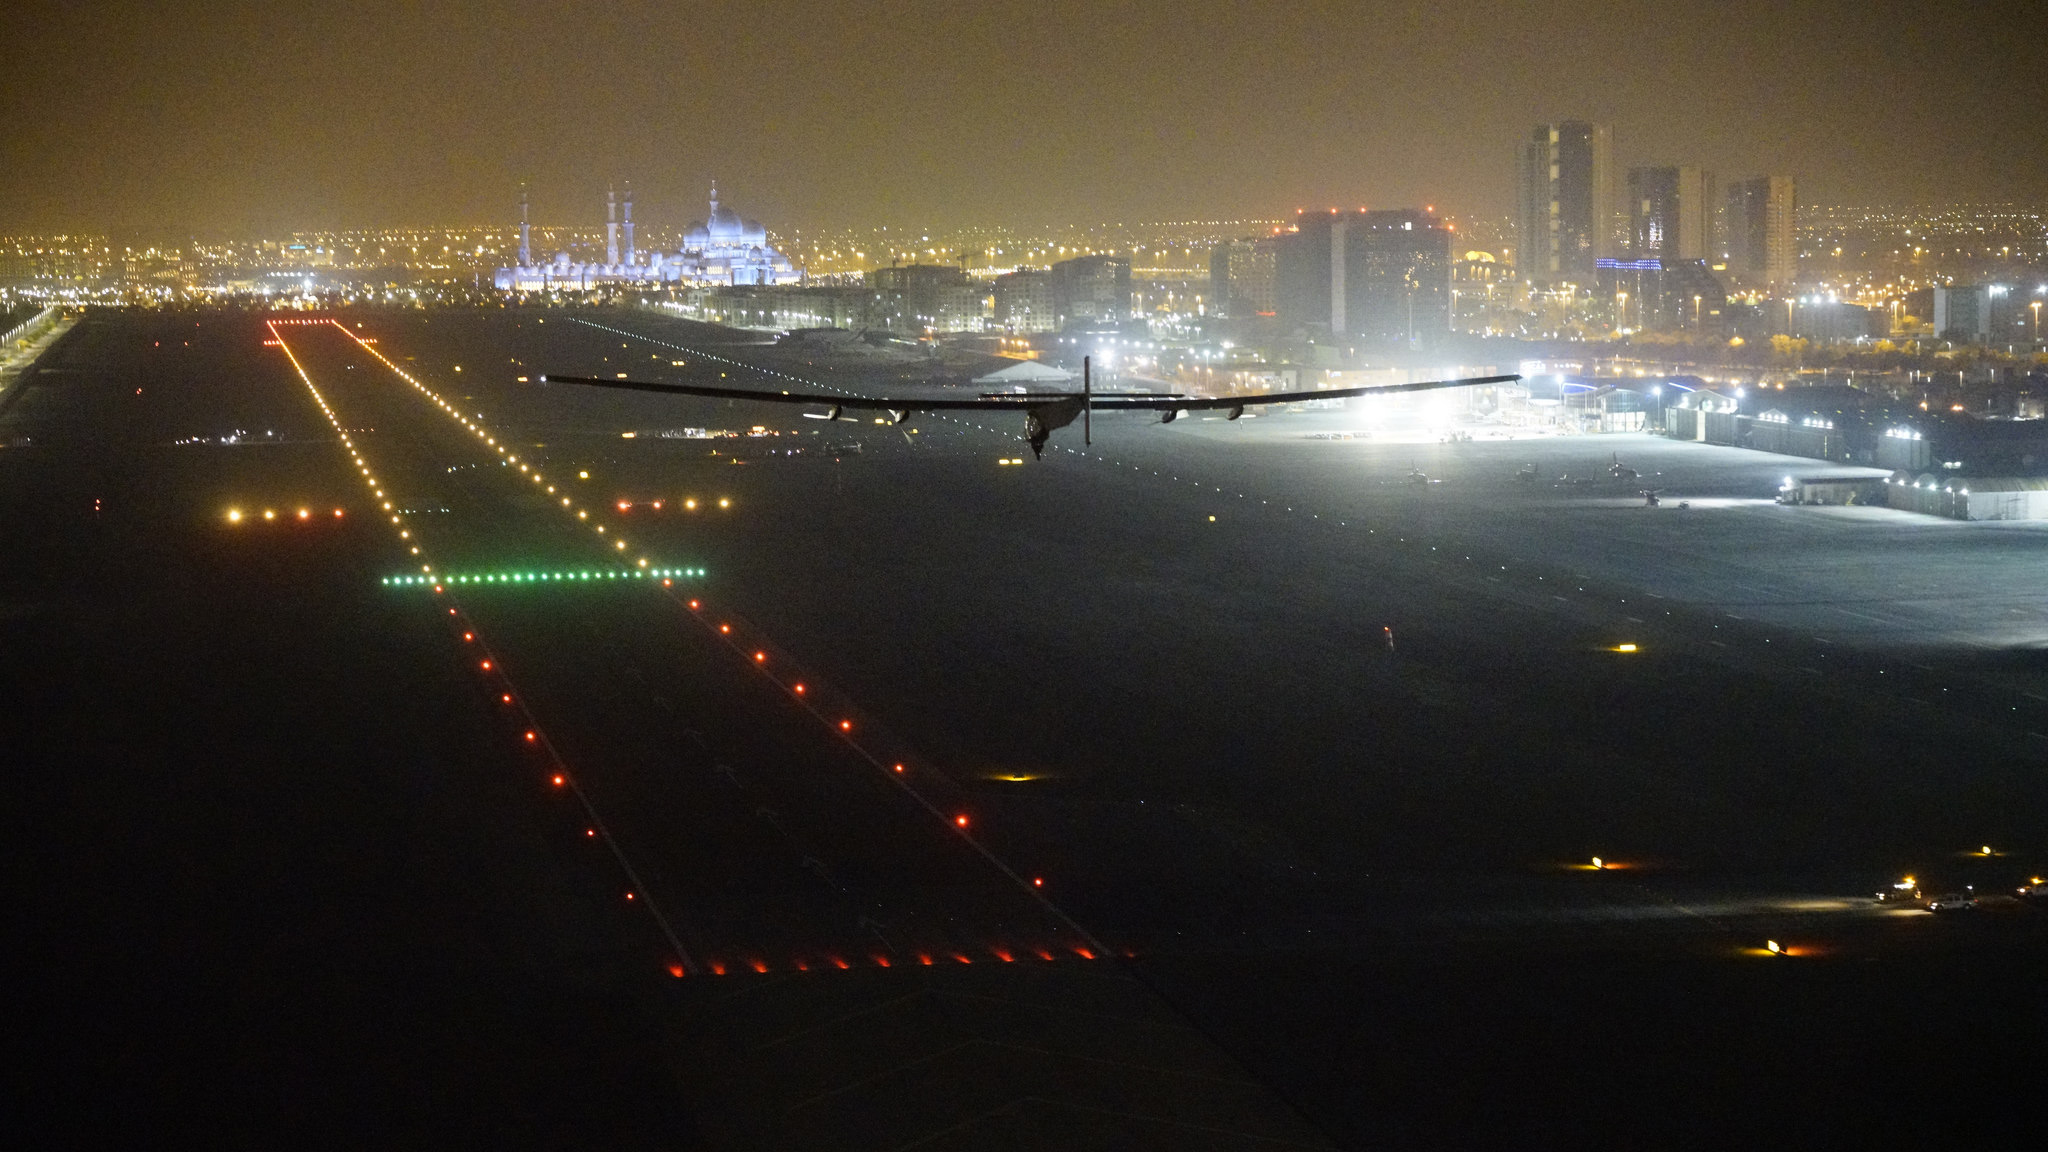 Solar Impulse 2 approaches to land in Abu Dhabi, concluding its round-the-world solar-powered flight. Photo courtesy of Solar Impulse.